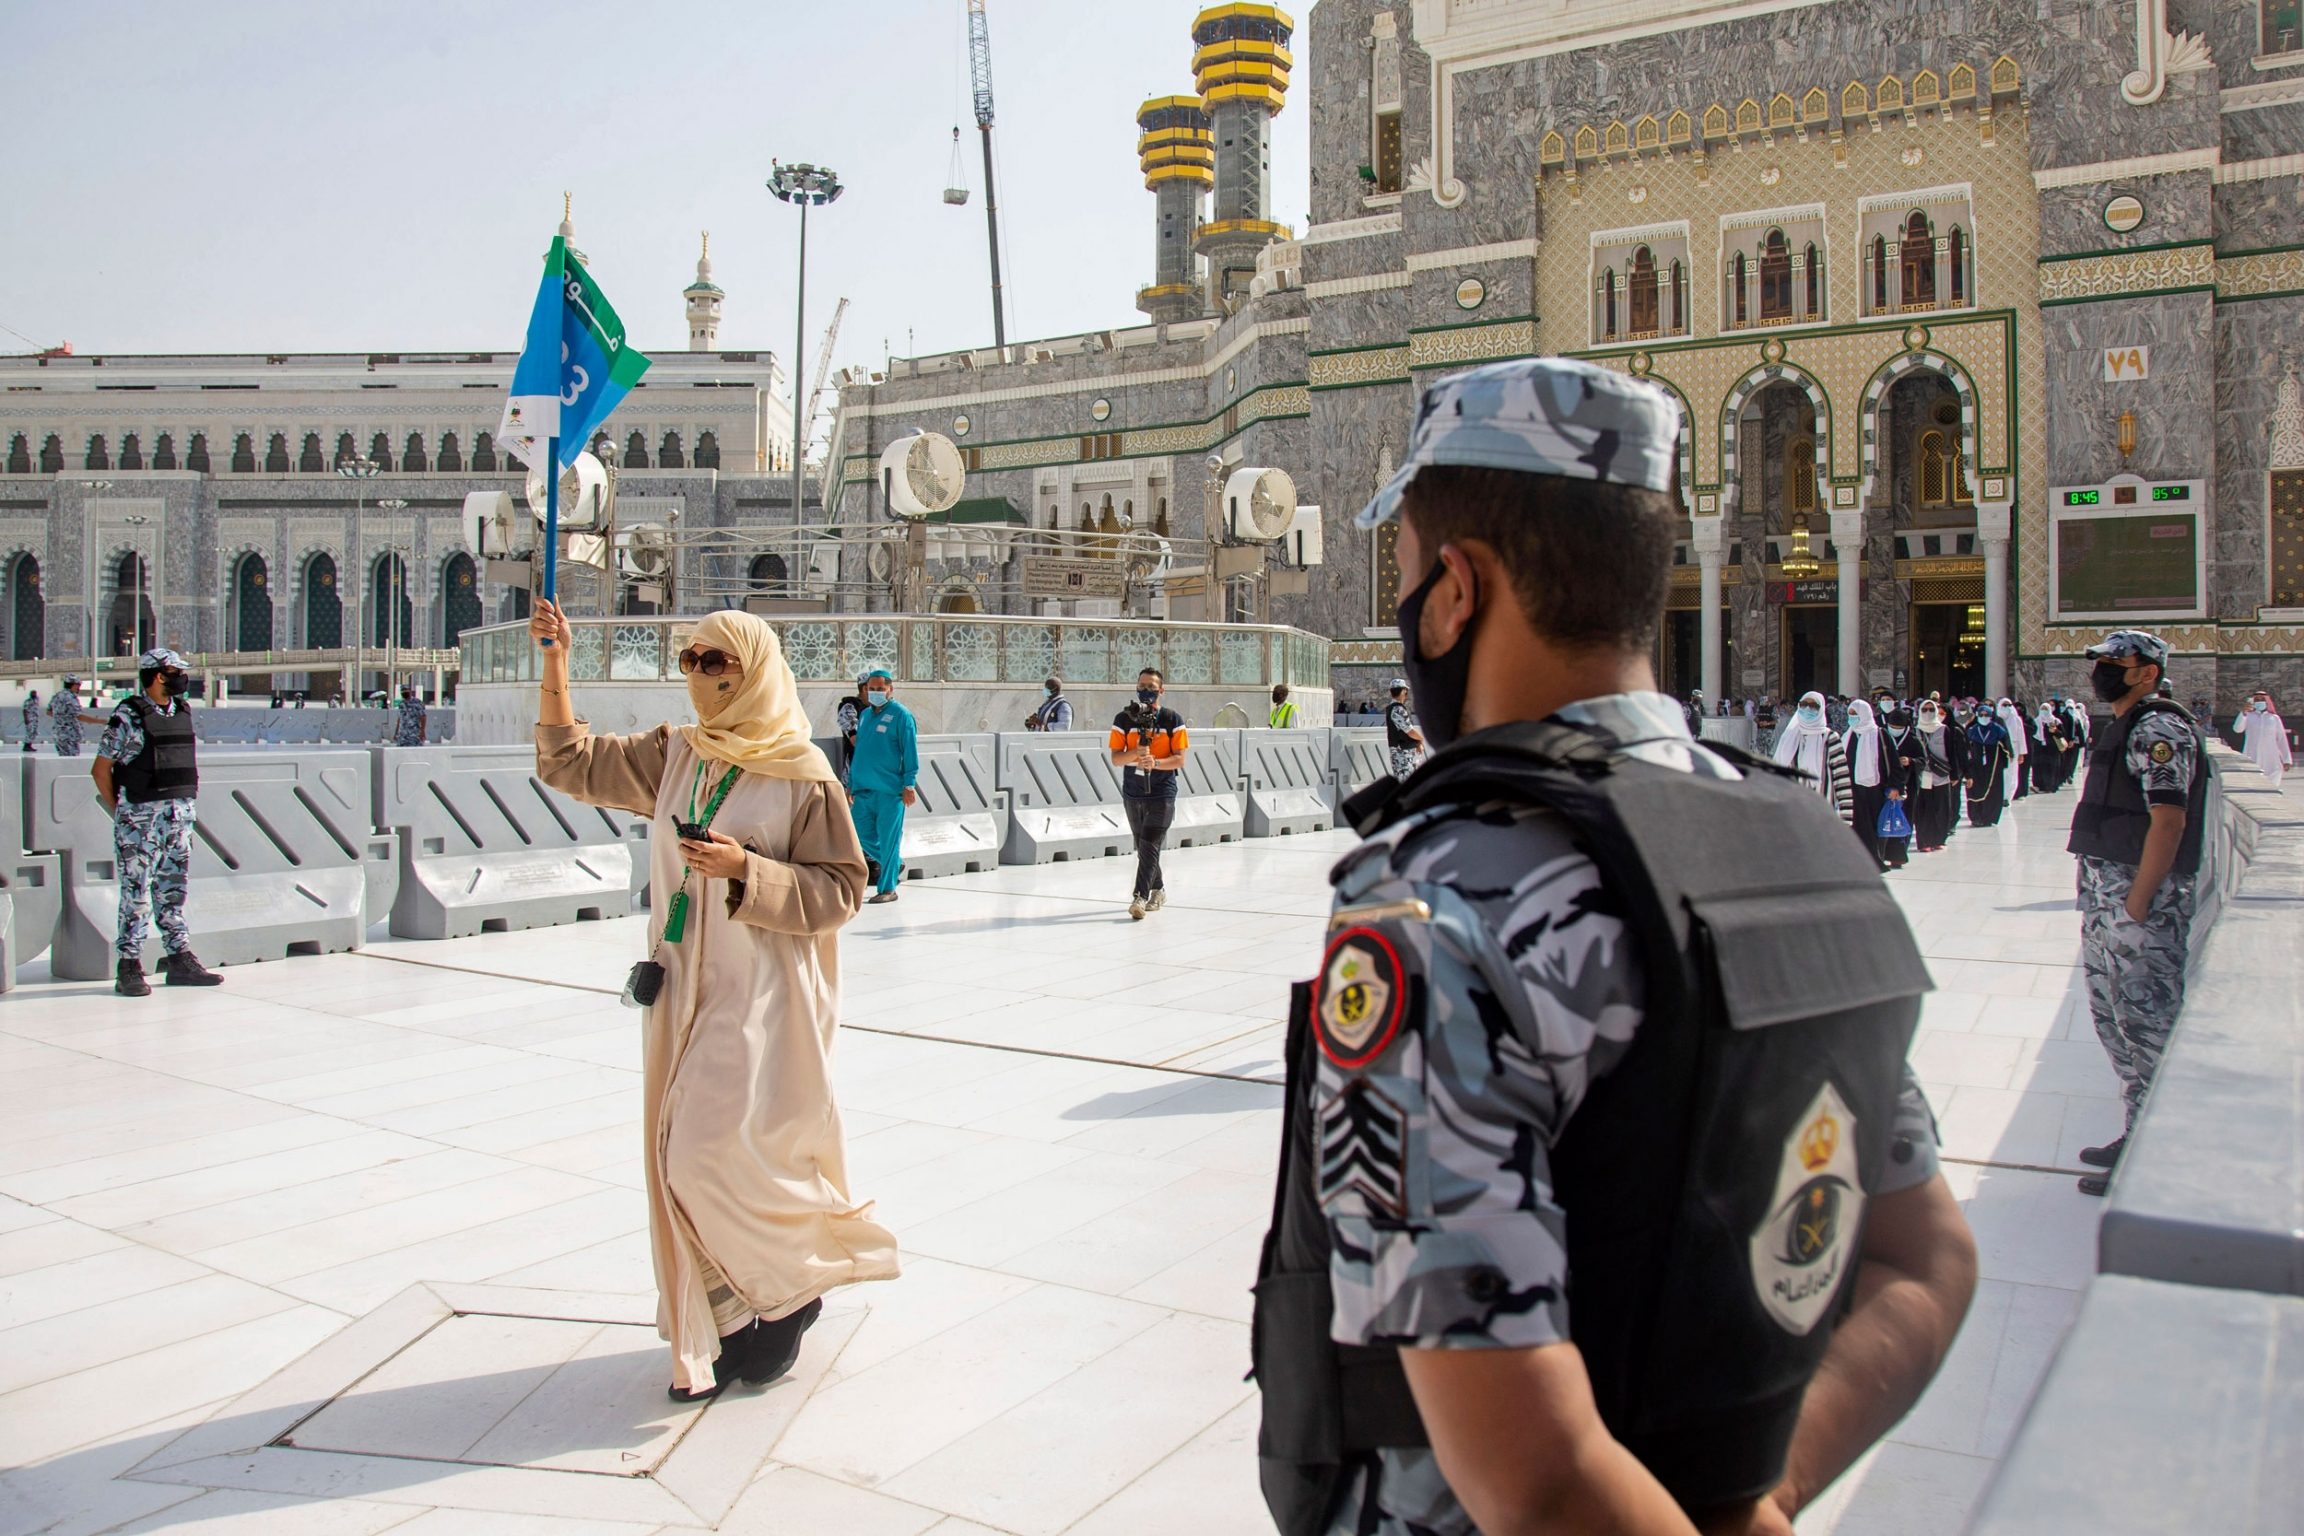 A security official is shown in the near ground with a woman in the distance walking and holding up a guide flag.